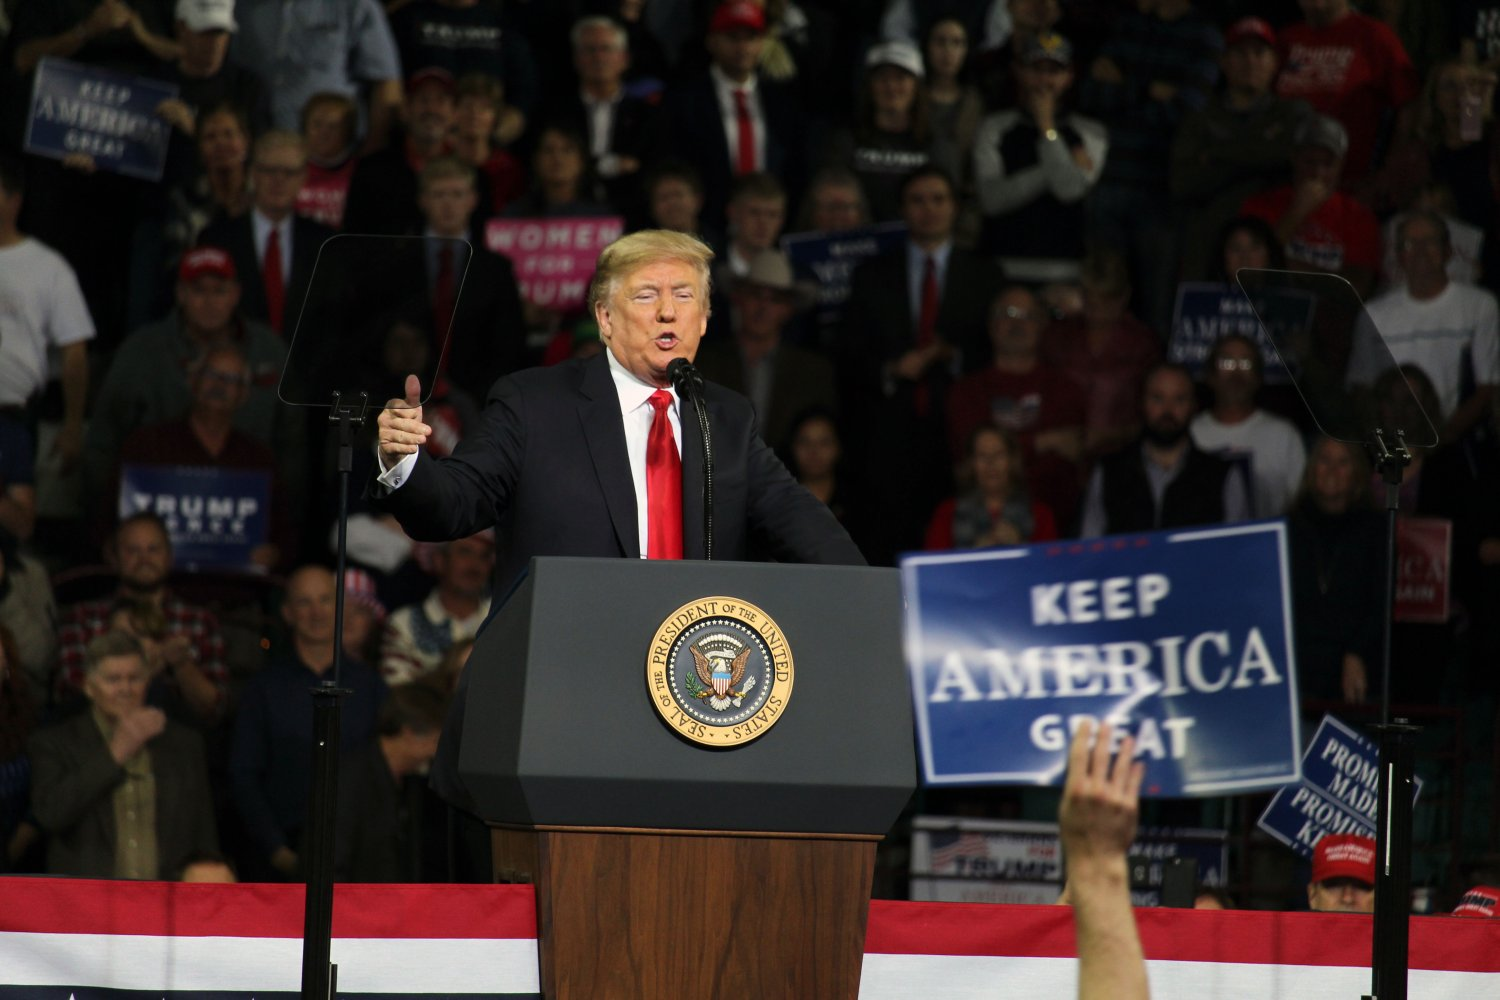 President Donald Trump gestures to the crowd as he discusses his current campaign plan for his 2020 presidential run. He spoke about his opponents as well as his current agenda to begin policies within the government such as the Space Force and immigration reform.